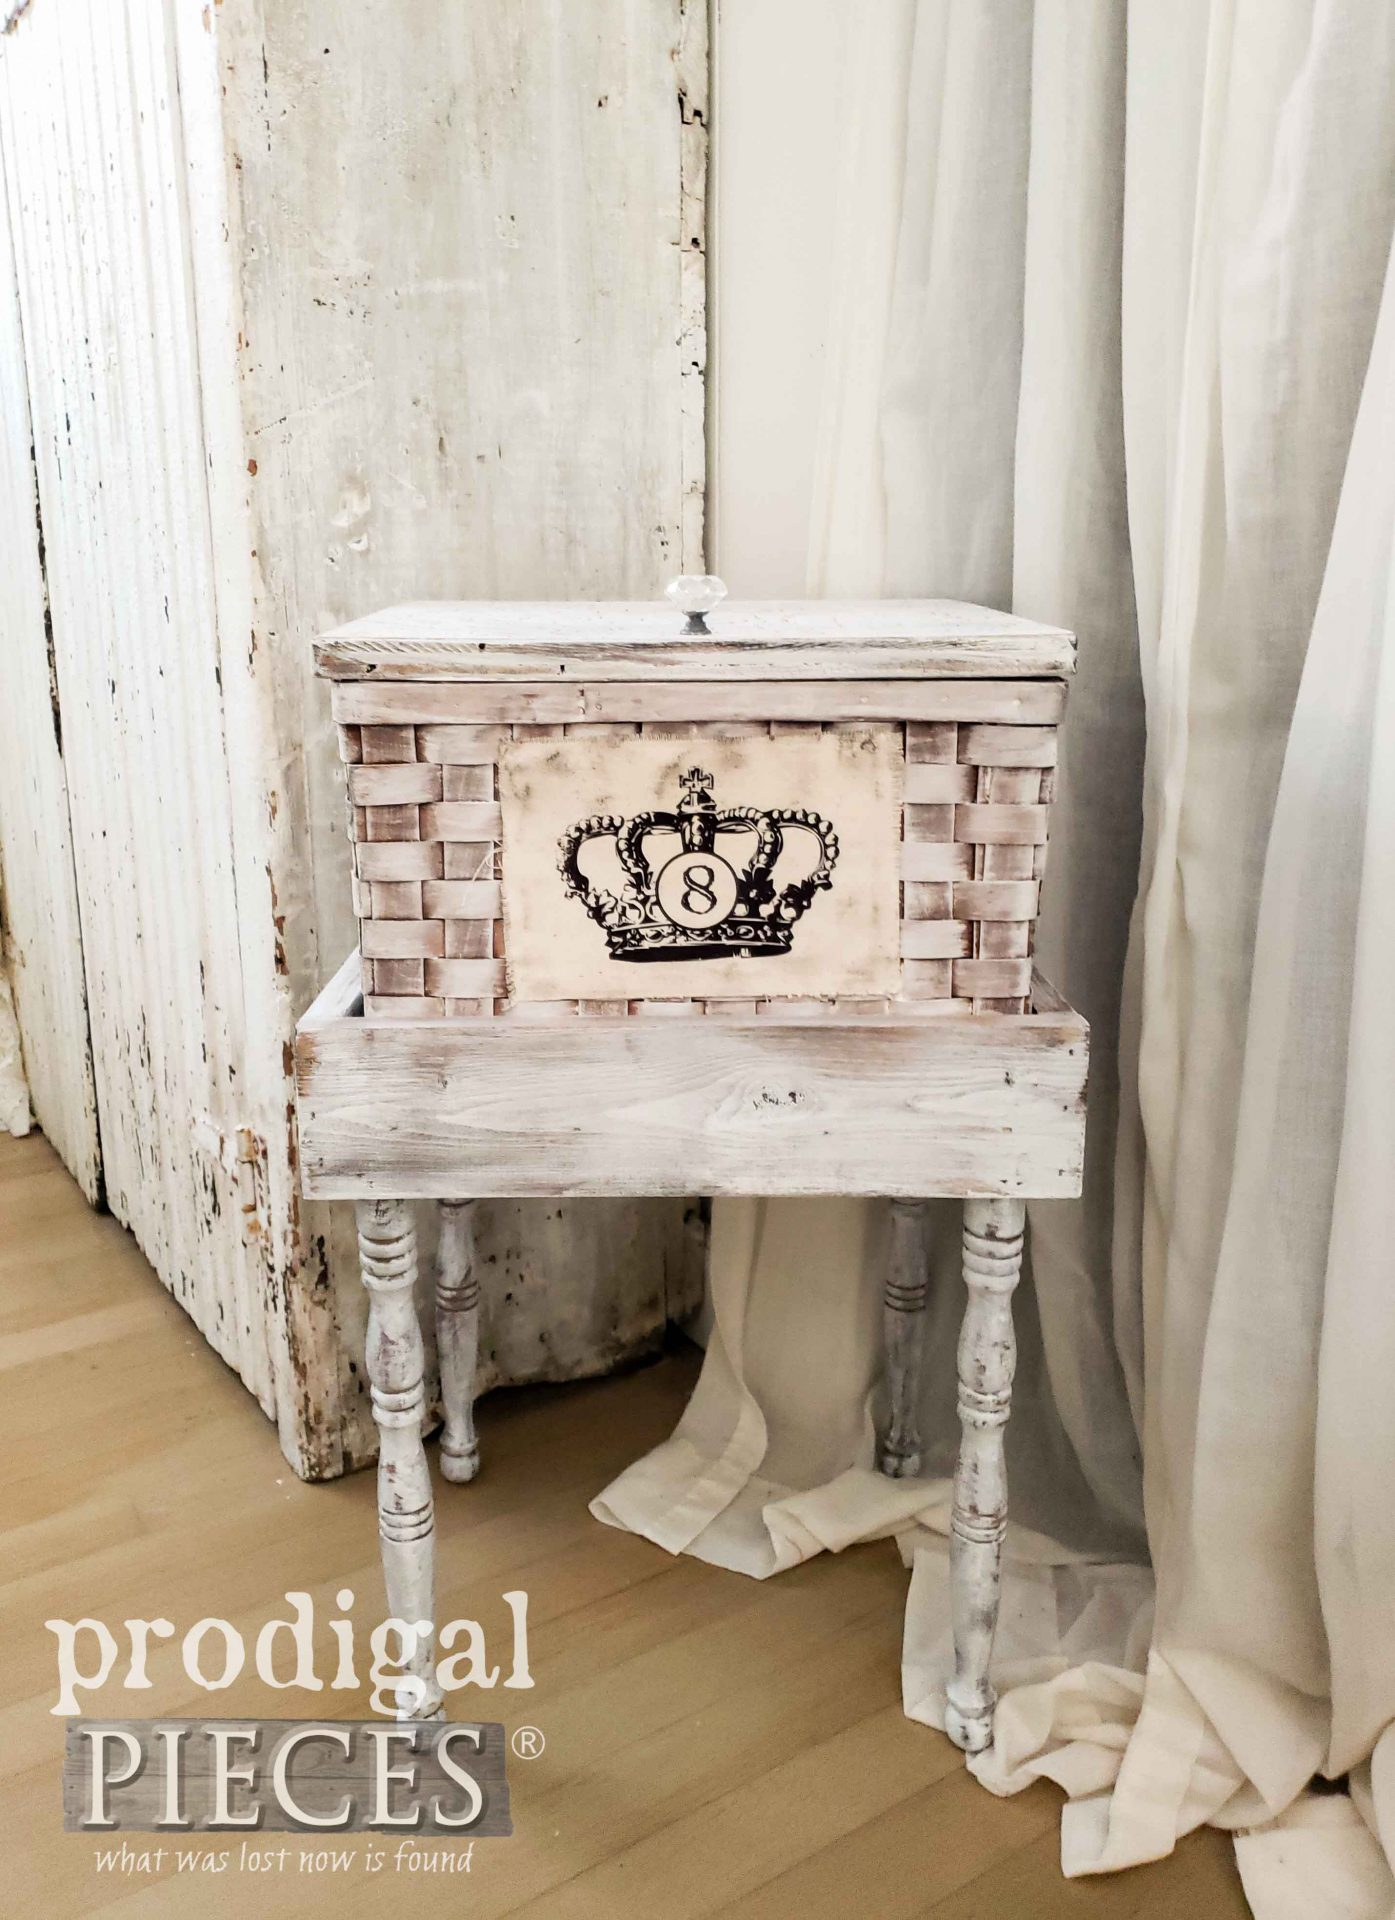 French Farmhouse Basket Table with Extra Storage by Larissa of Prodigal Pieces | prodigalpieces.com #prodigalpieces #home #farmhouse #homedecor